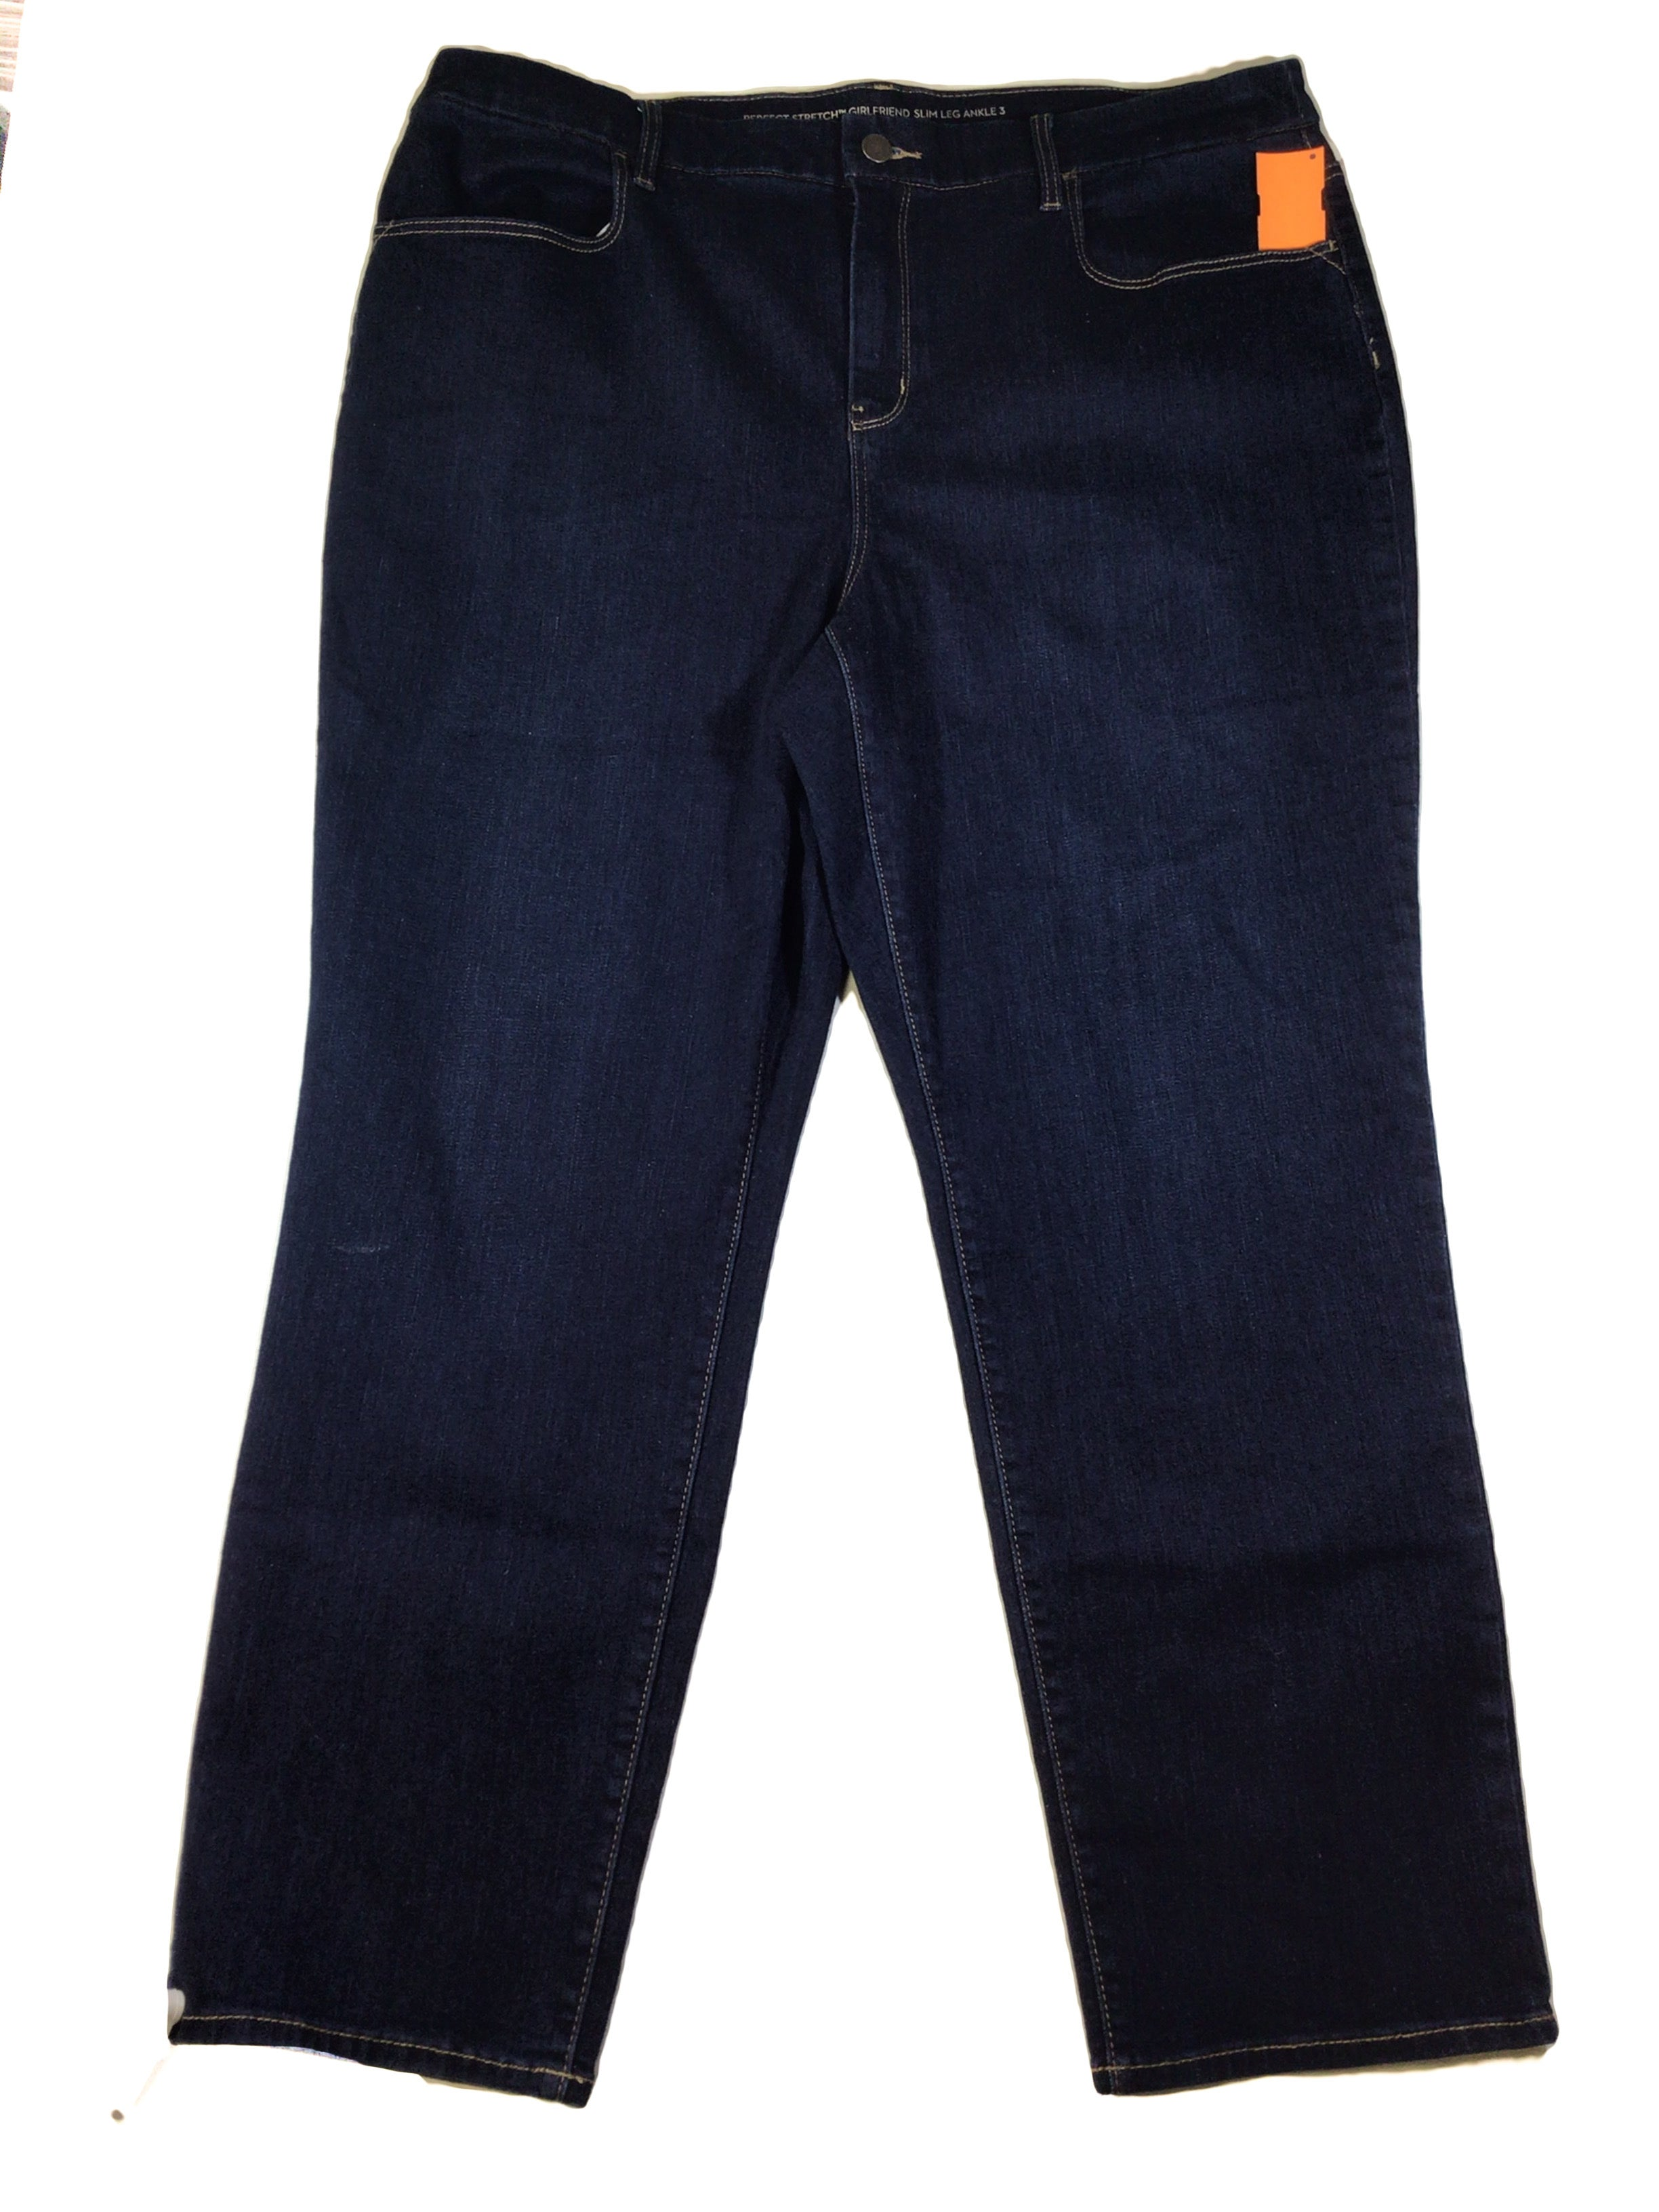 Primary Photo - BRAND: CHICOS O <BR>STYLE: JEANS <BR>COLOR: DENIM <BR>SIZE: XL <BR>SKU: 213-213143-9918